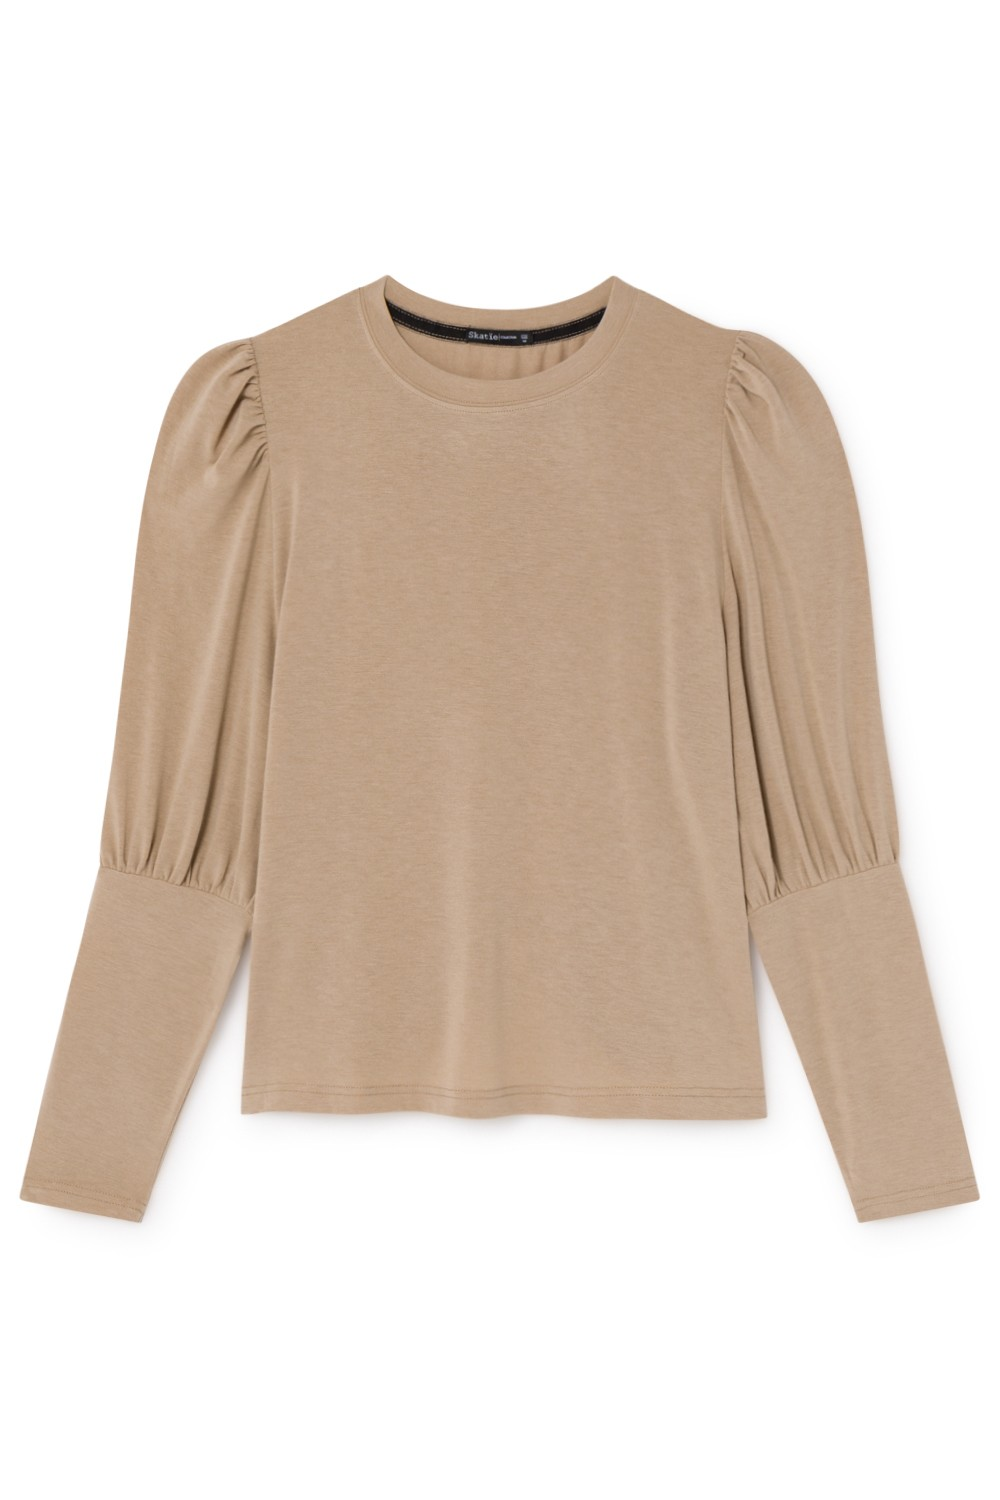 T-SHIRT MANGA BISHOP AJUSTADA BEIGE-L